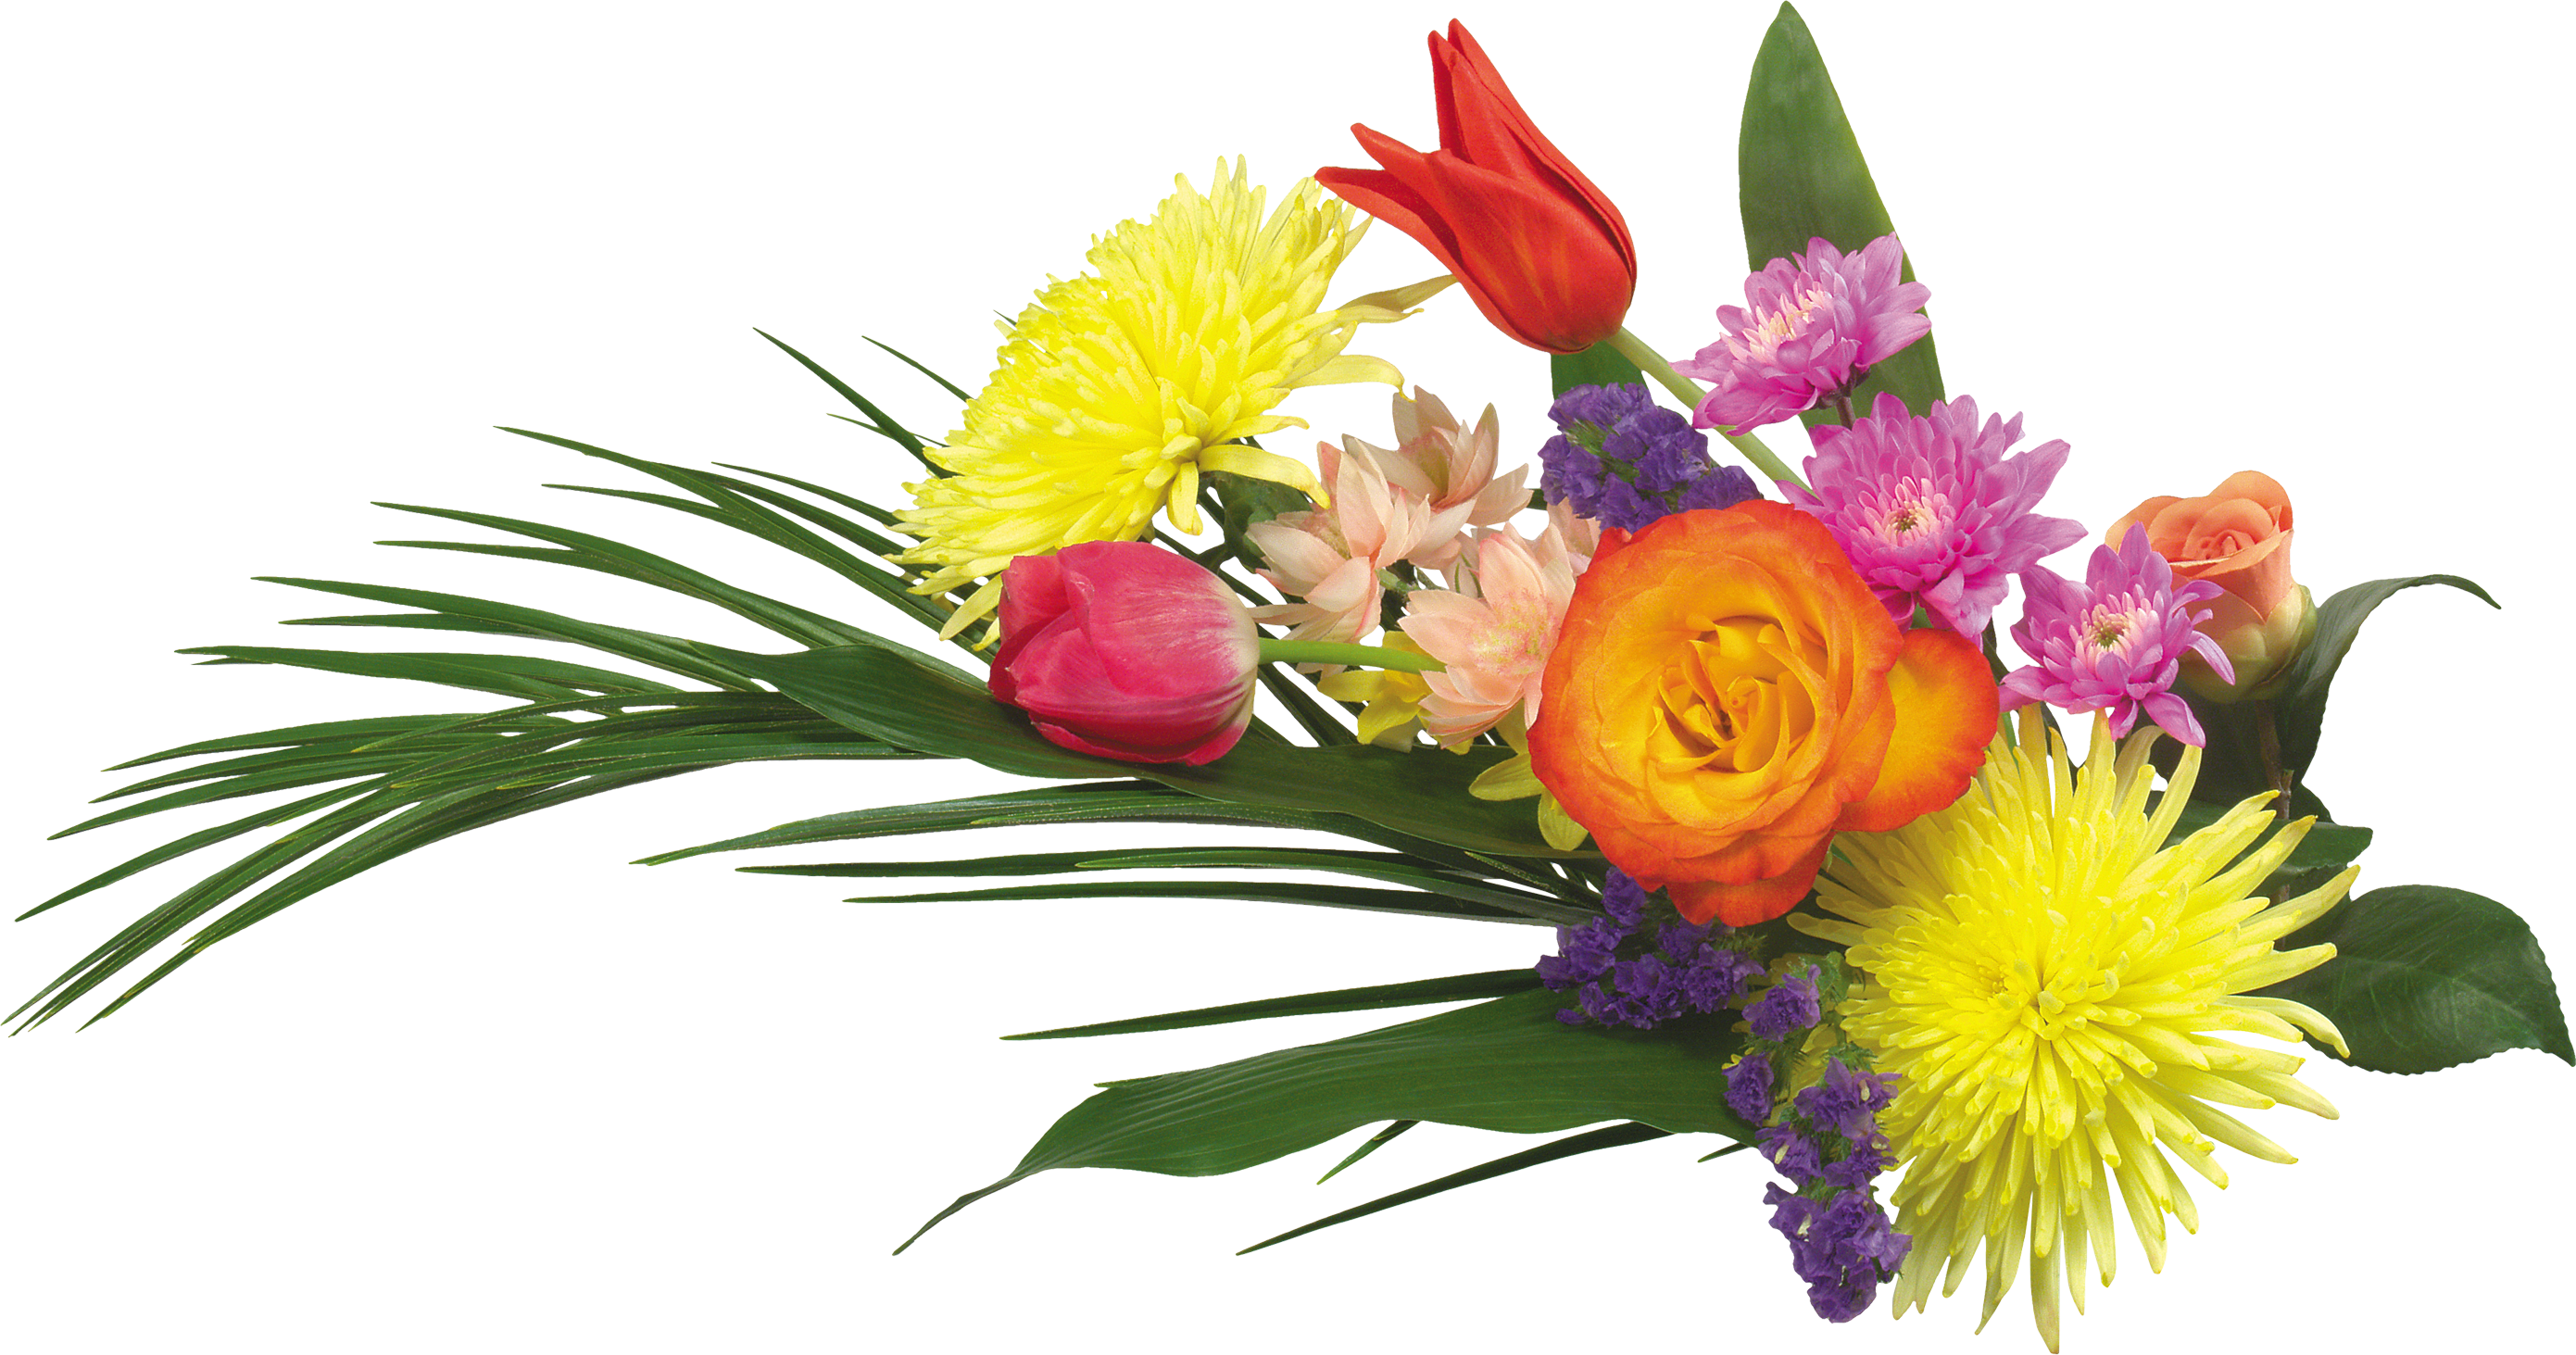 Floral flowers png. Bouquet